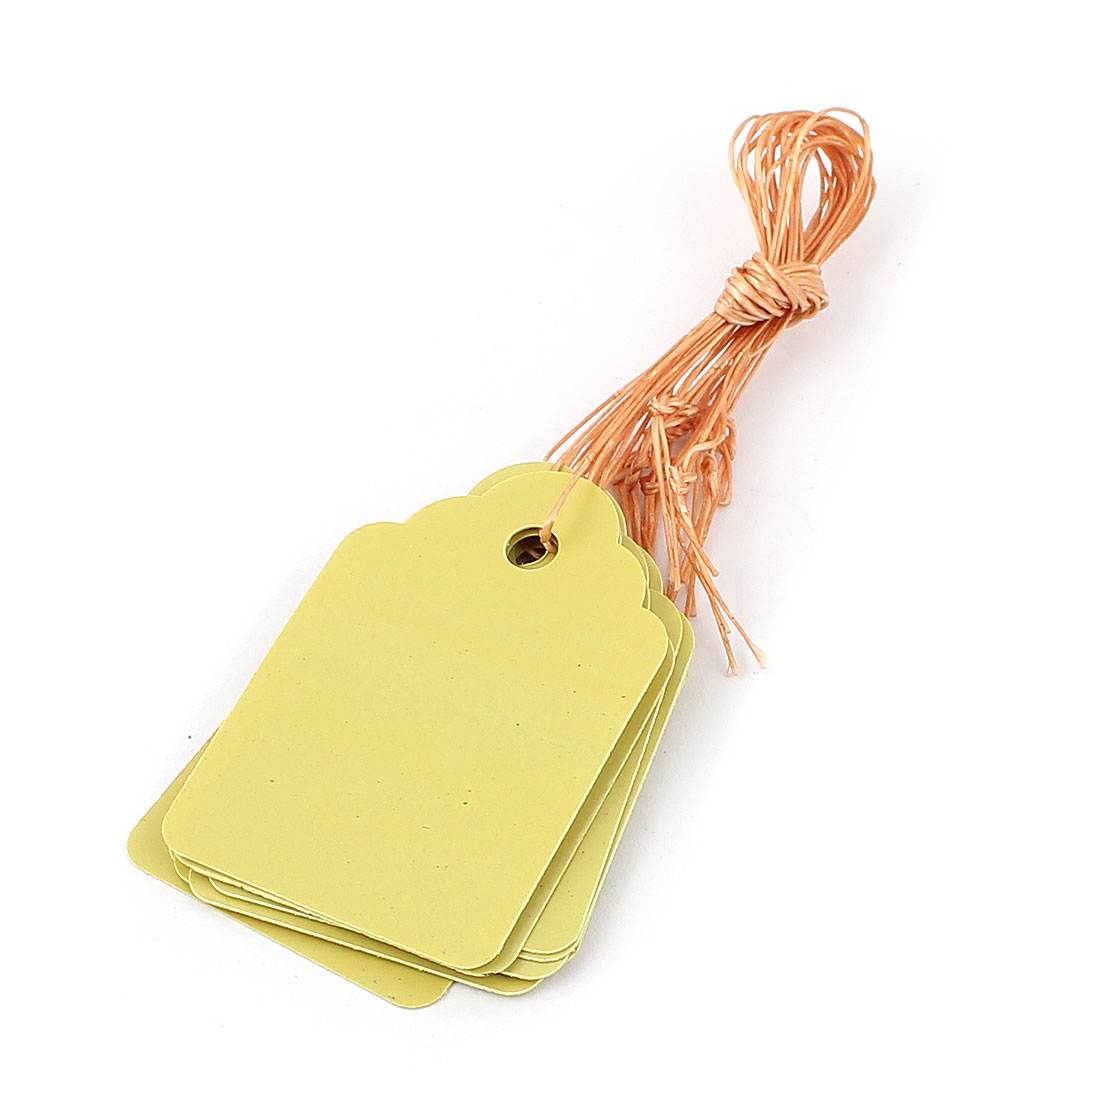 4.5cmx3cm Plastic Nursery Garden Plant Seed Hanging Tag Label Marker Yellow 10Pcs